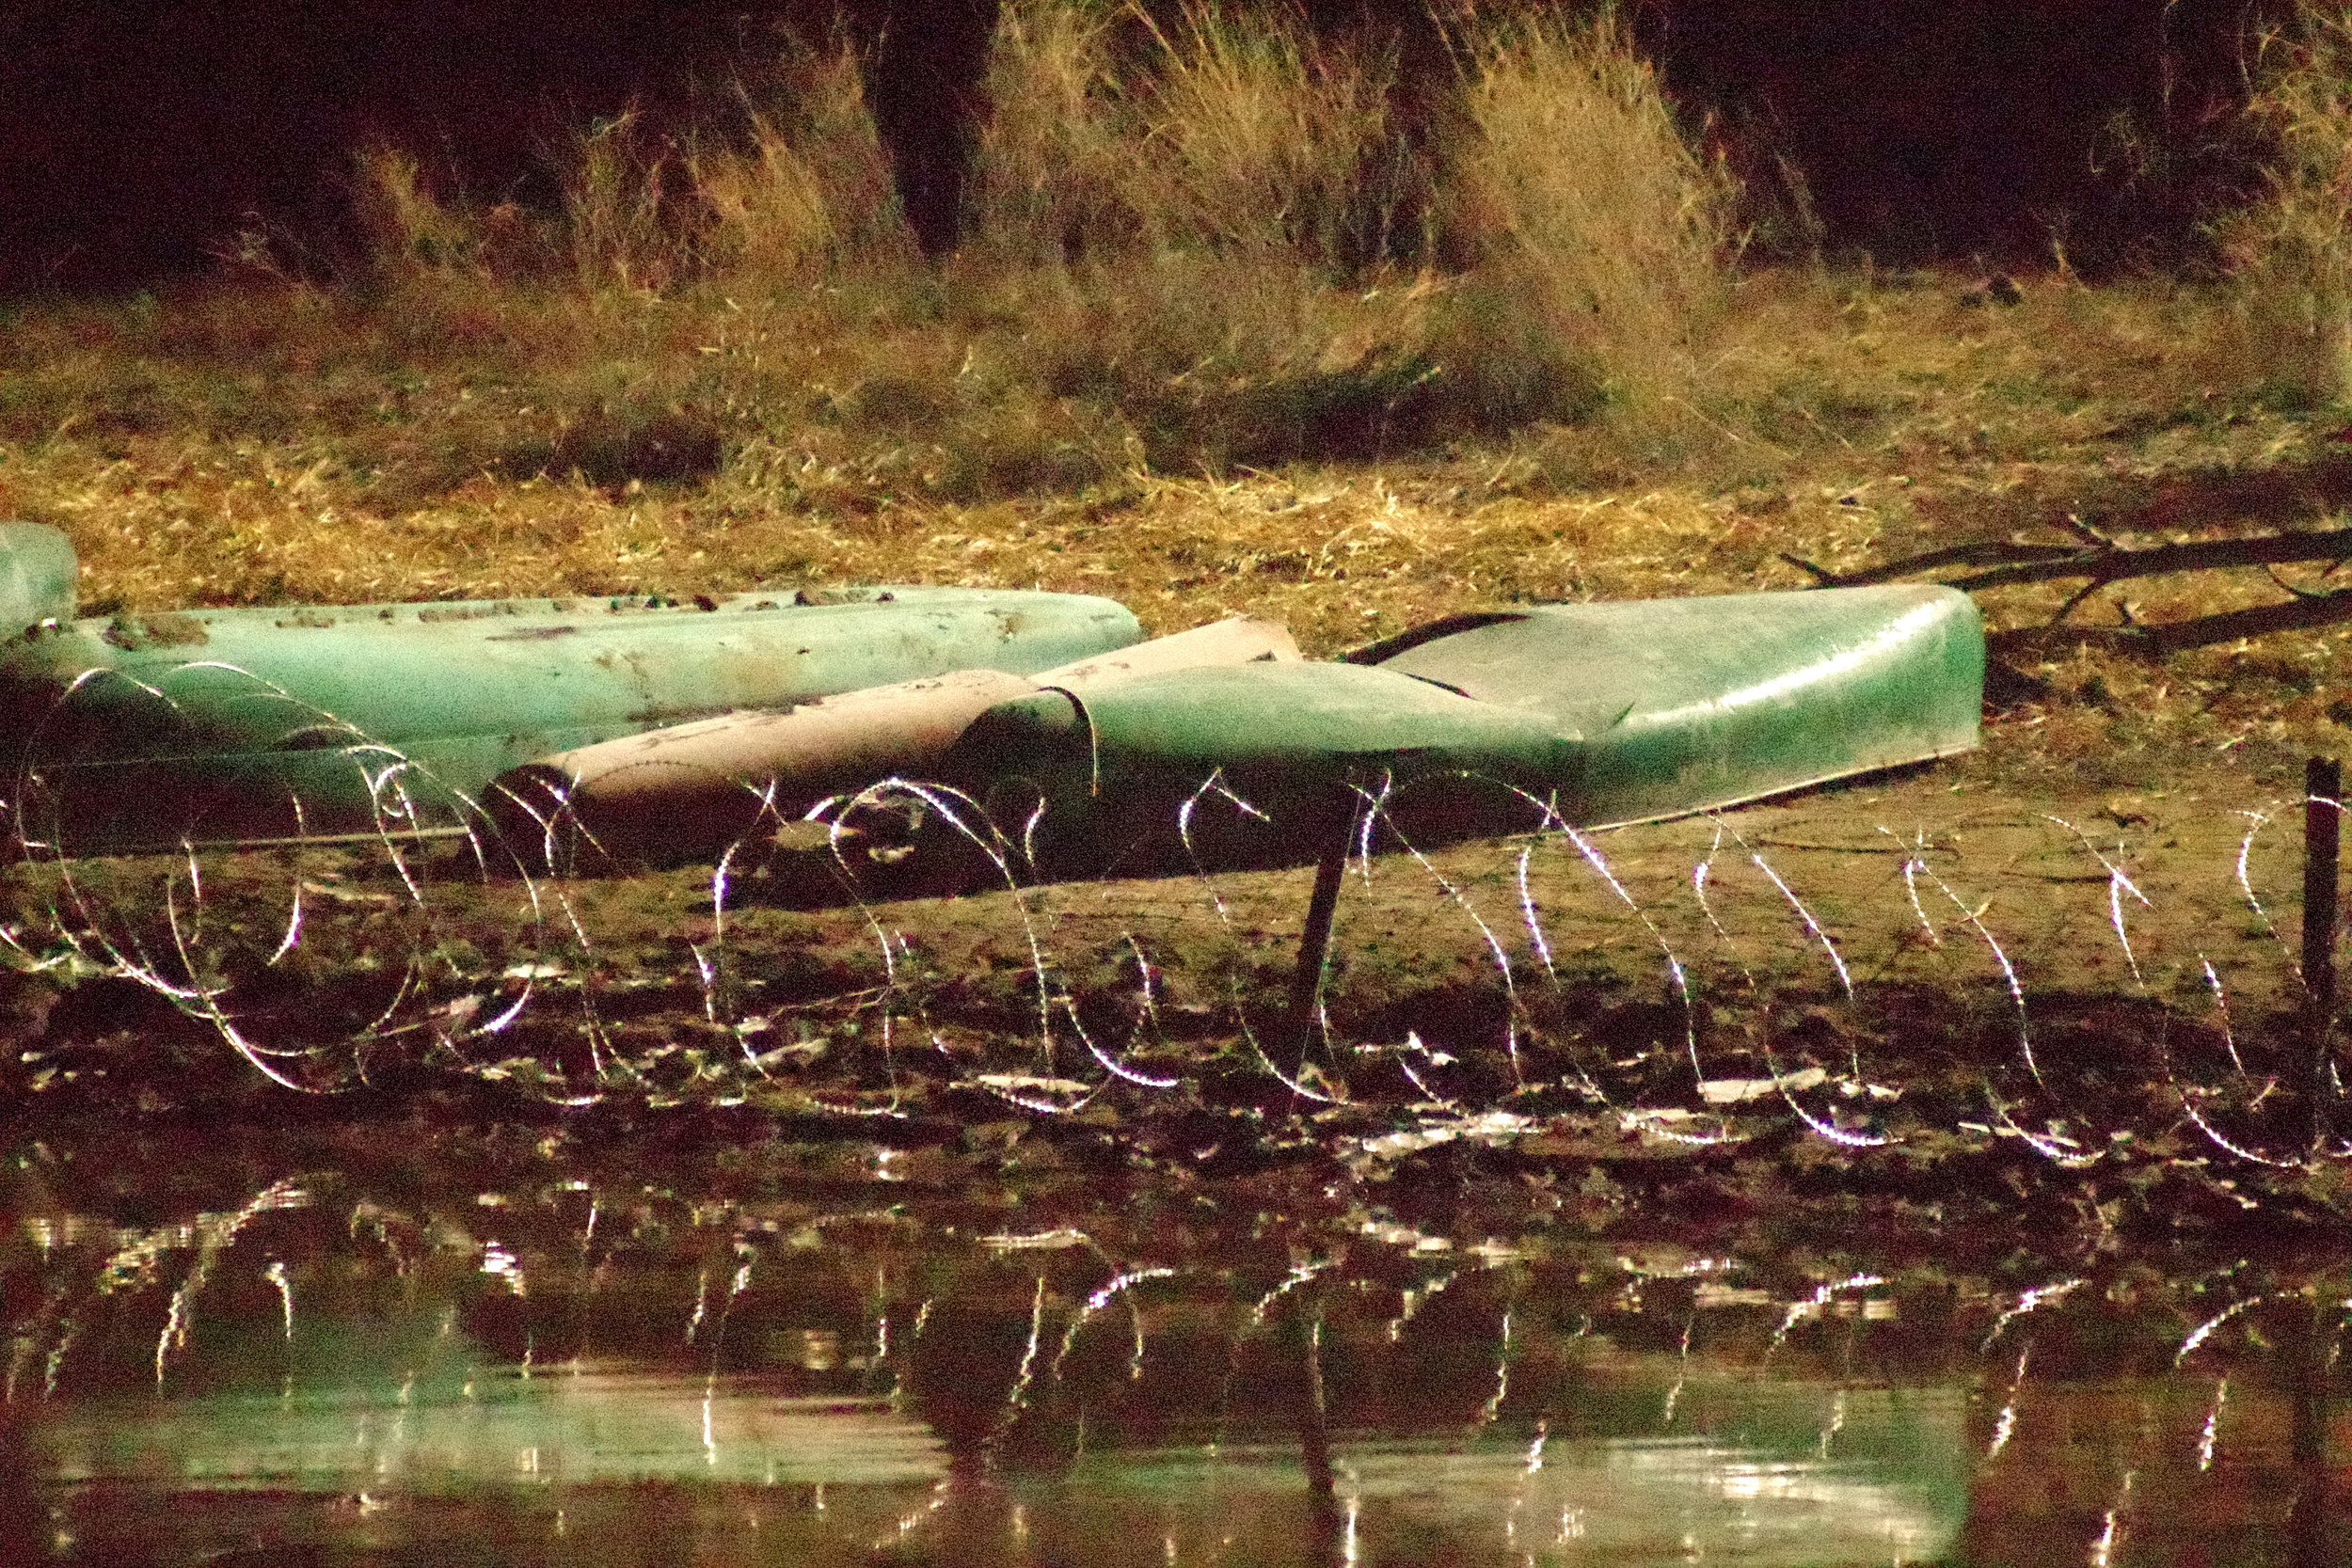 Canoes taken and smashed by cops, and put behind razor wire - at night. Not seen in photo, a beaver swam along the blocked shoreline.